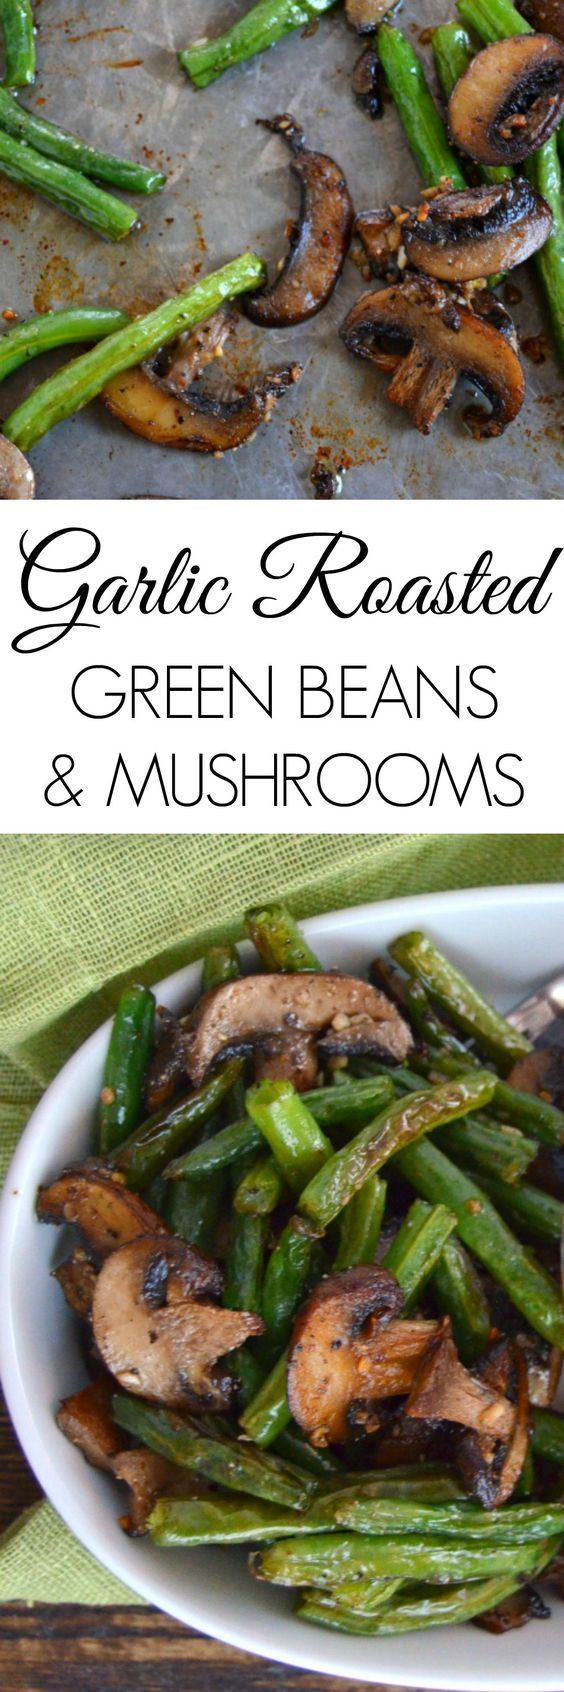 Garlic Roasted Green Beans and Mushrooms.